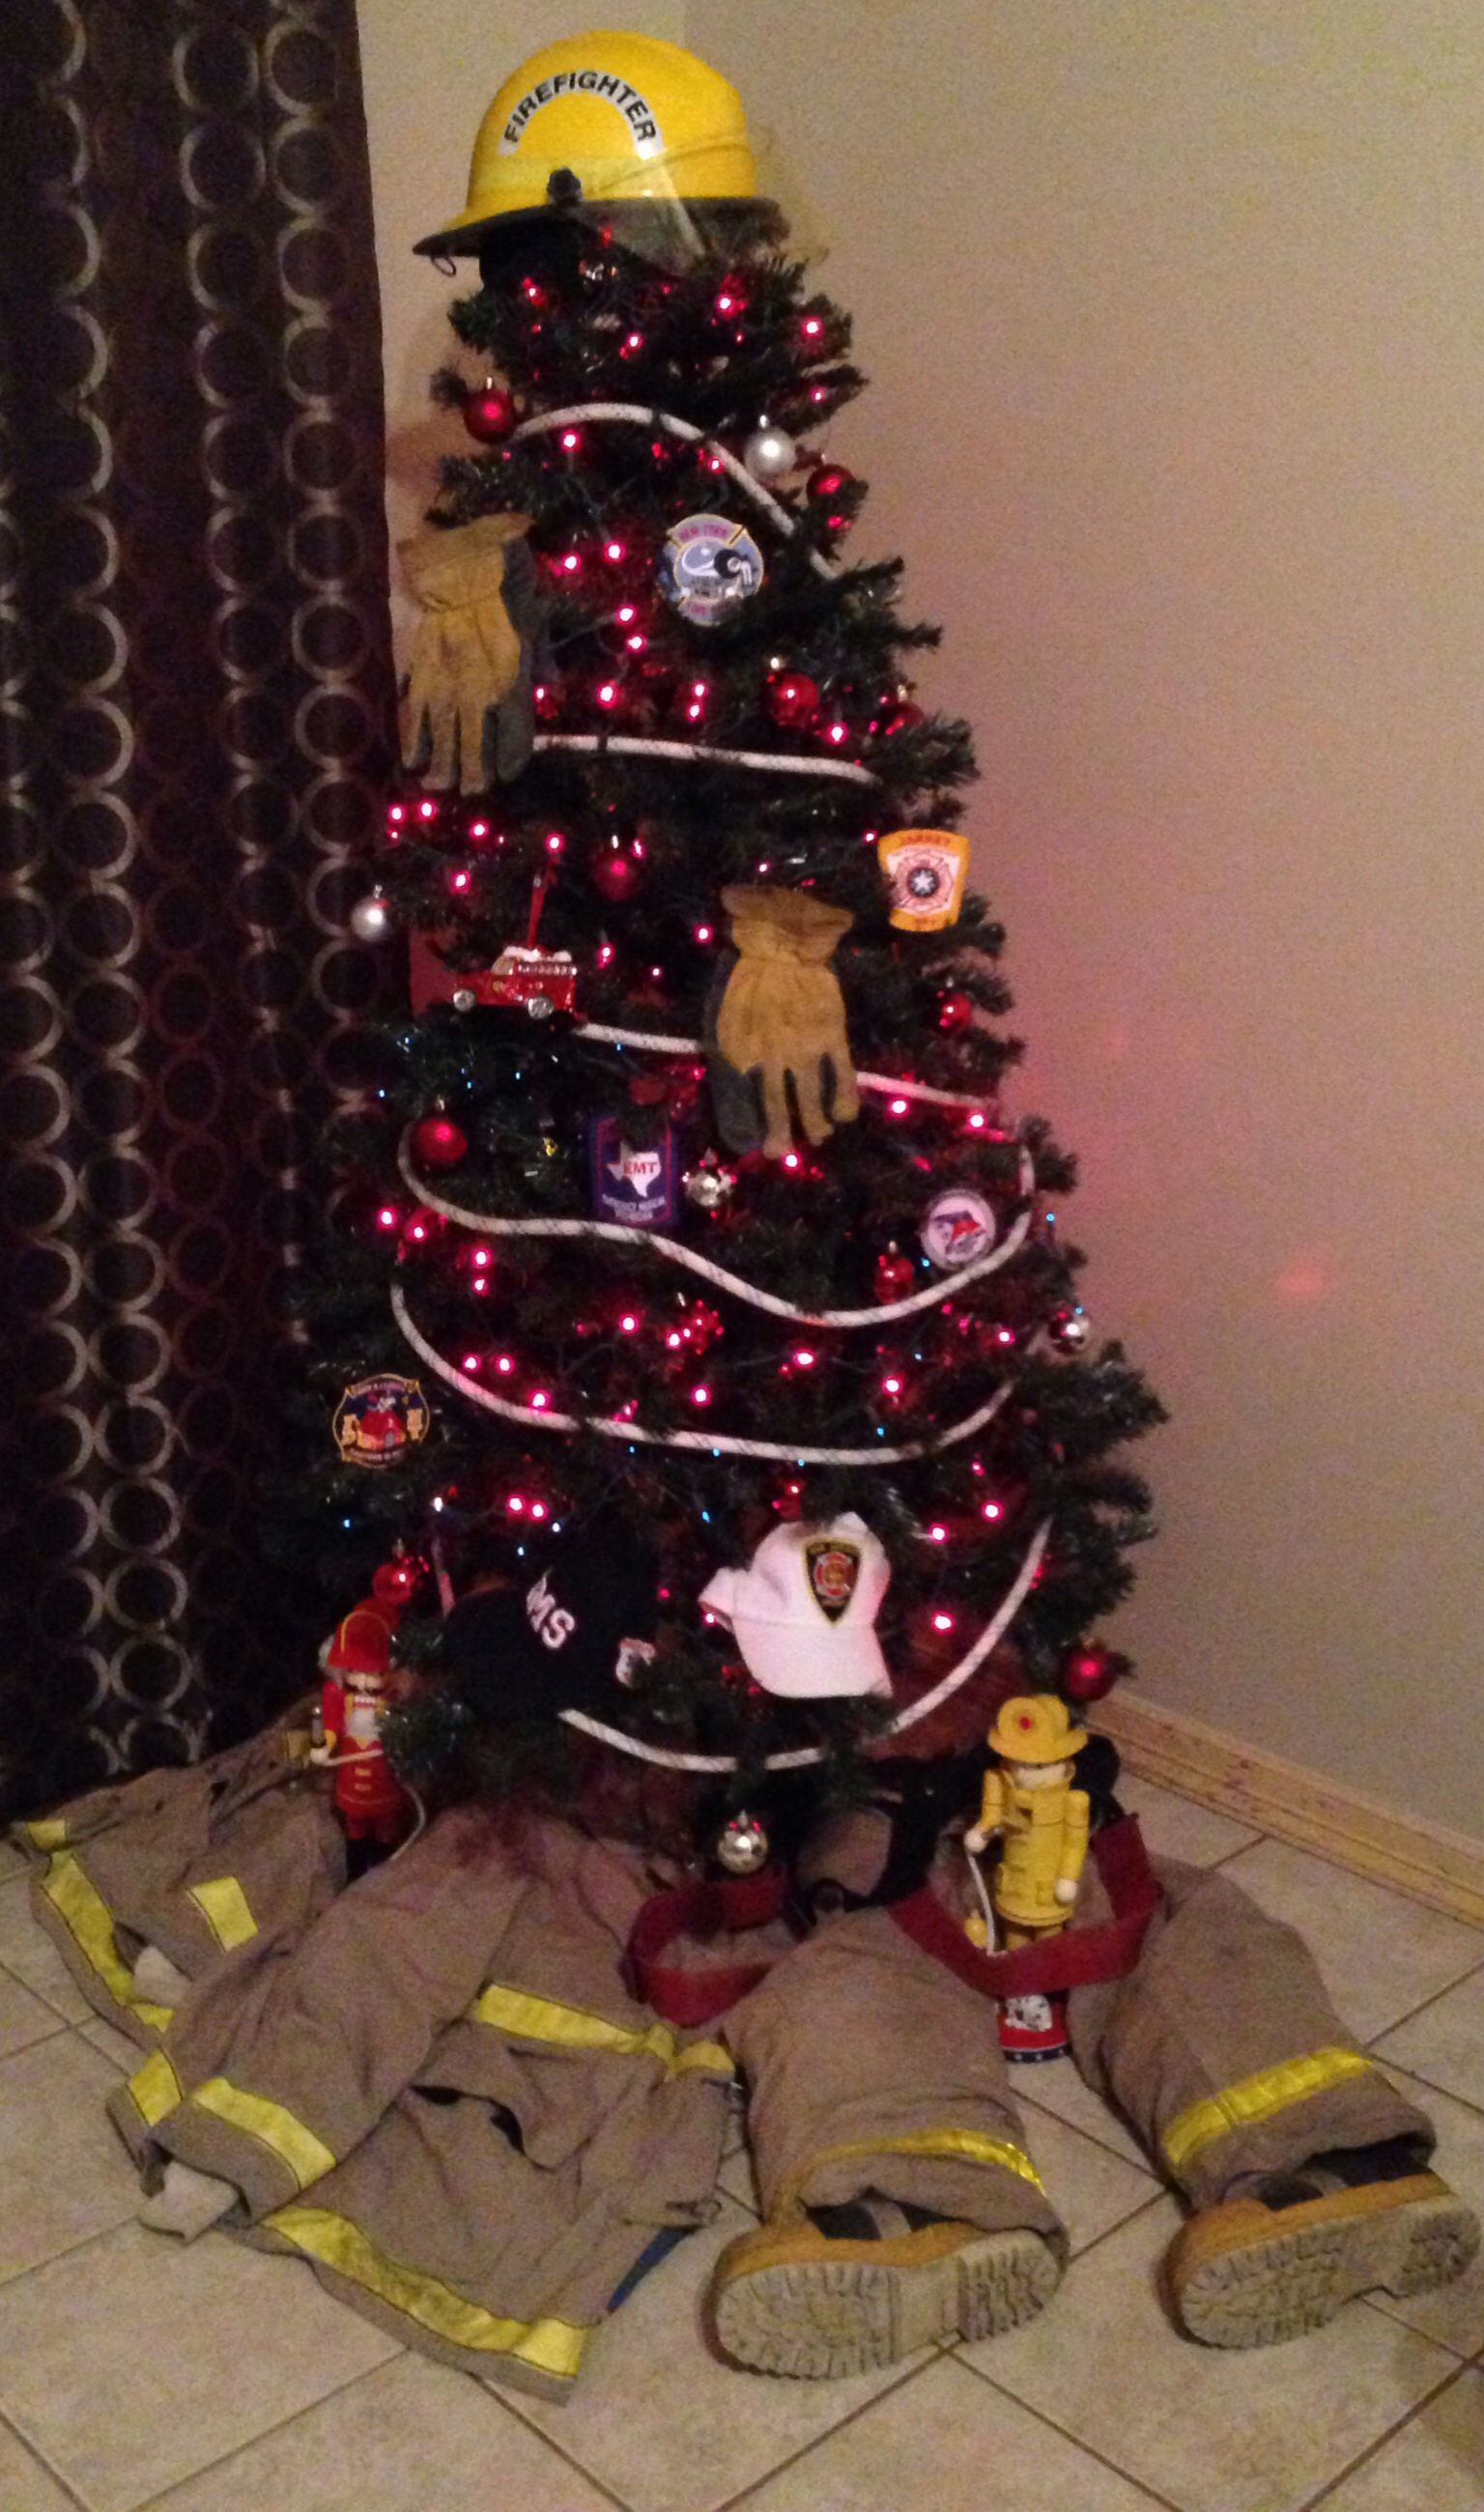 Firefighter Christmas Tree? Decorated with patches and accessories ...